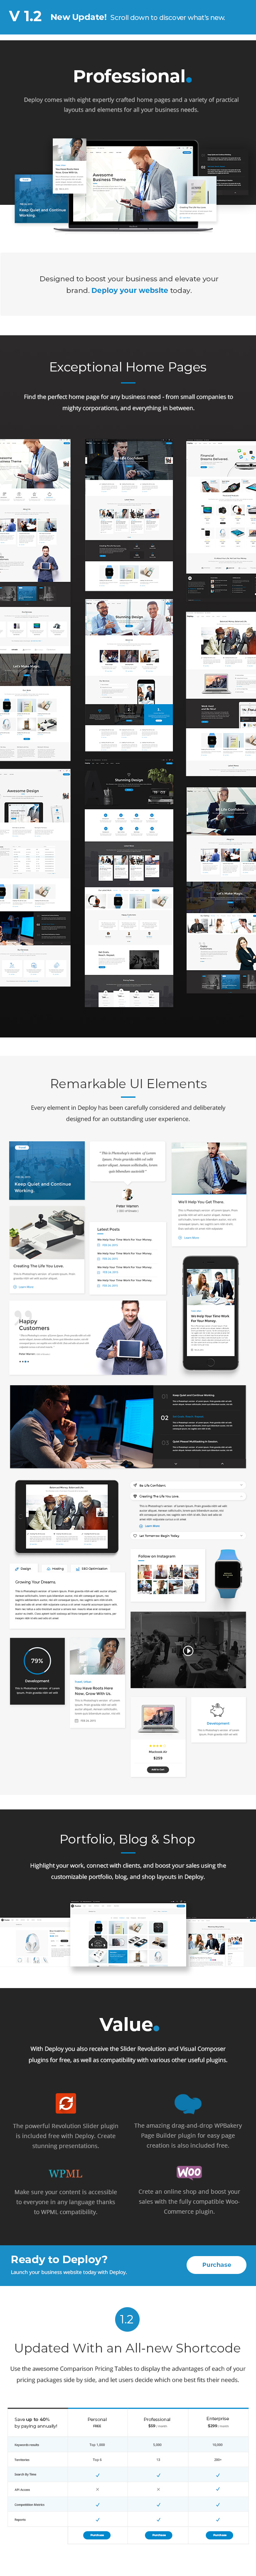 Deploy - Consulting & Business Theme - 1